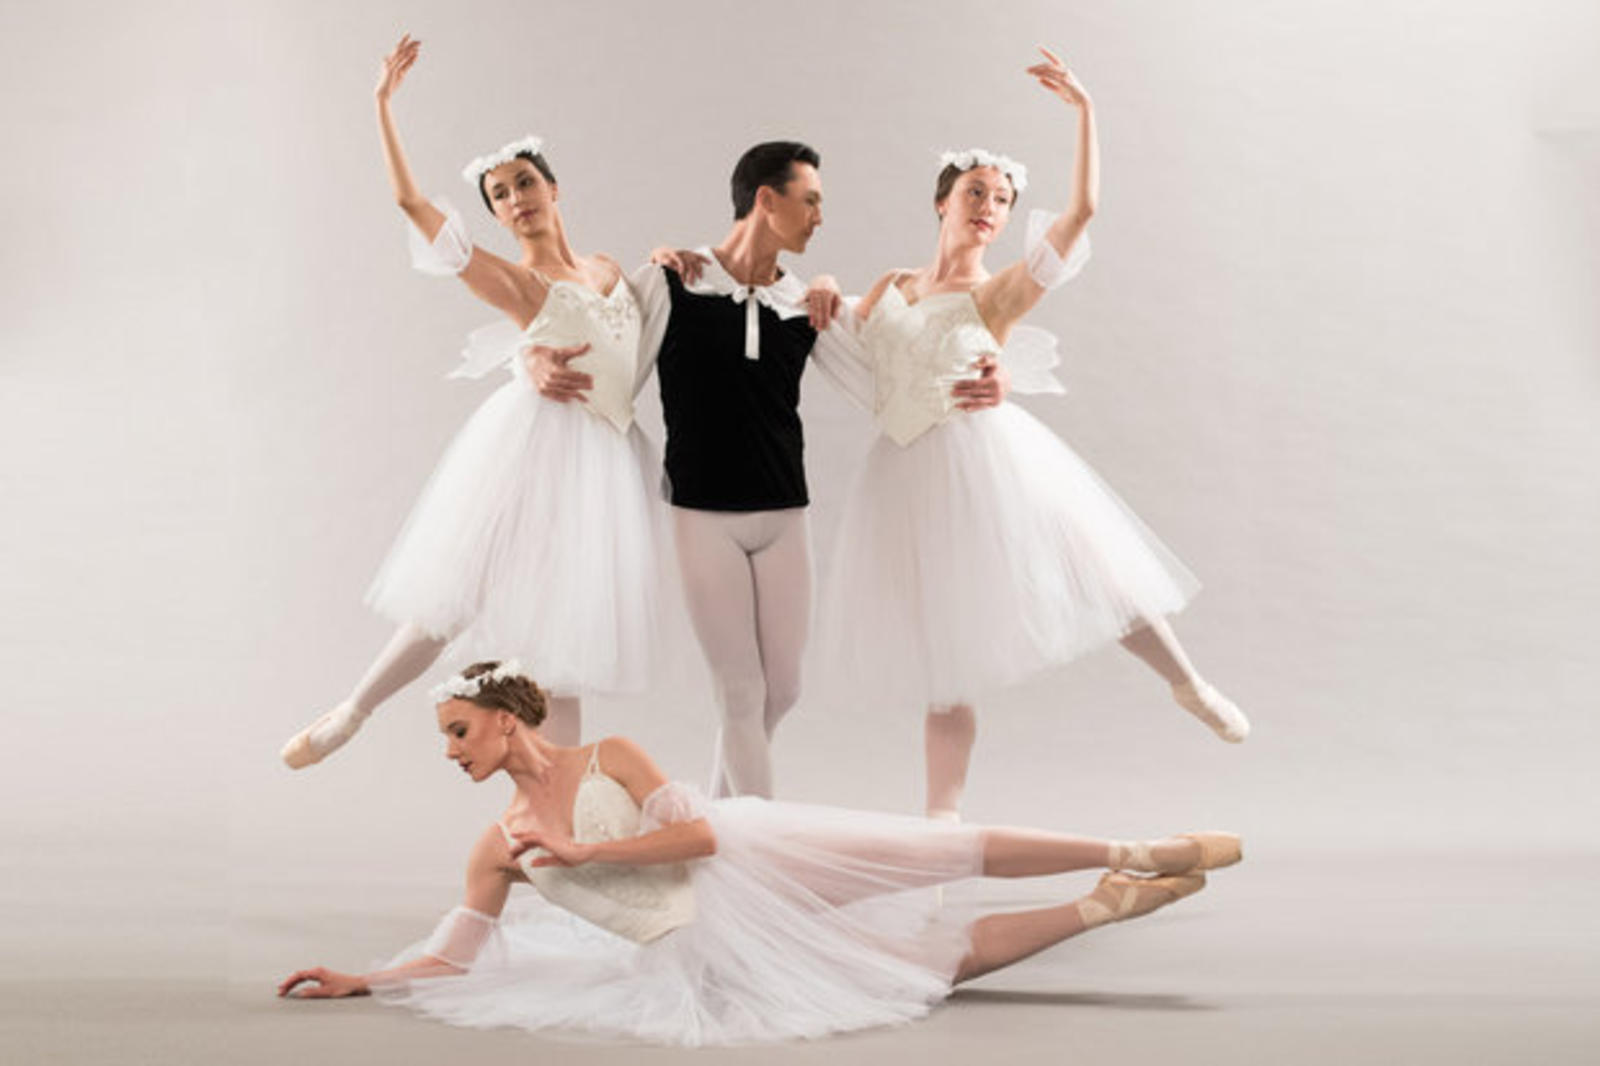 Playhouse Square Welcomes Cleveland Ballet As Newest Resident Company